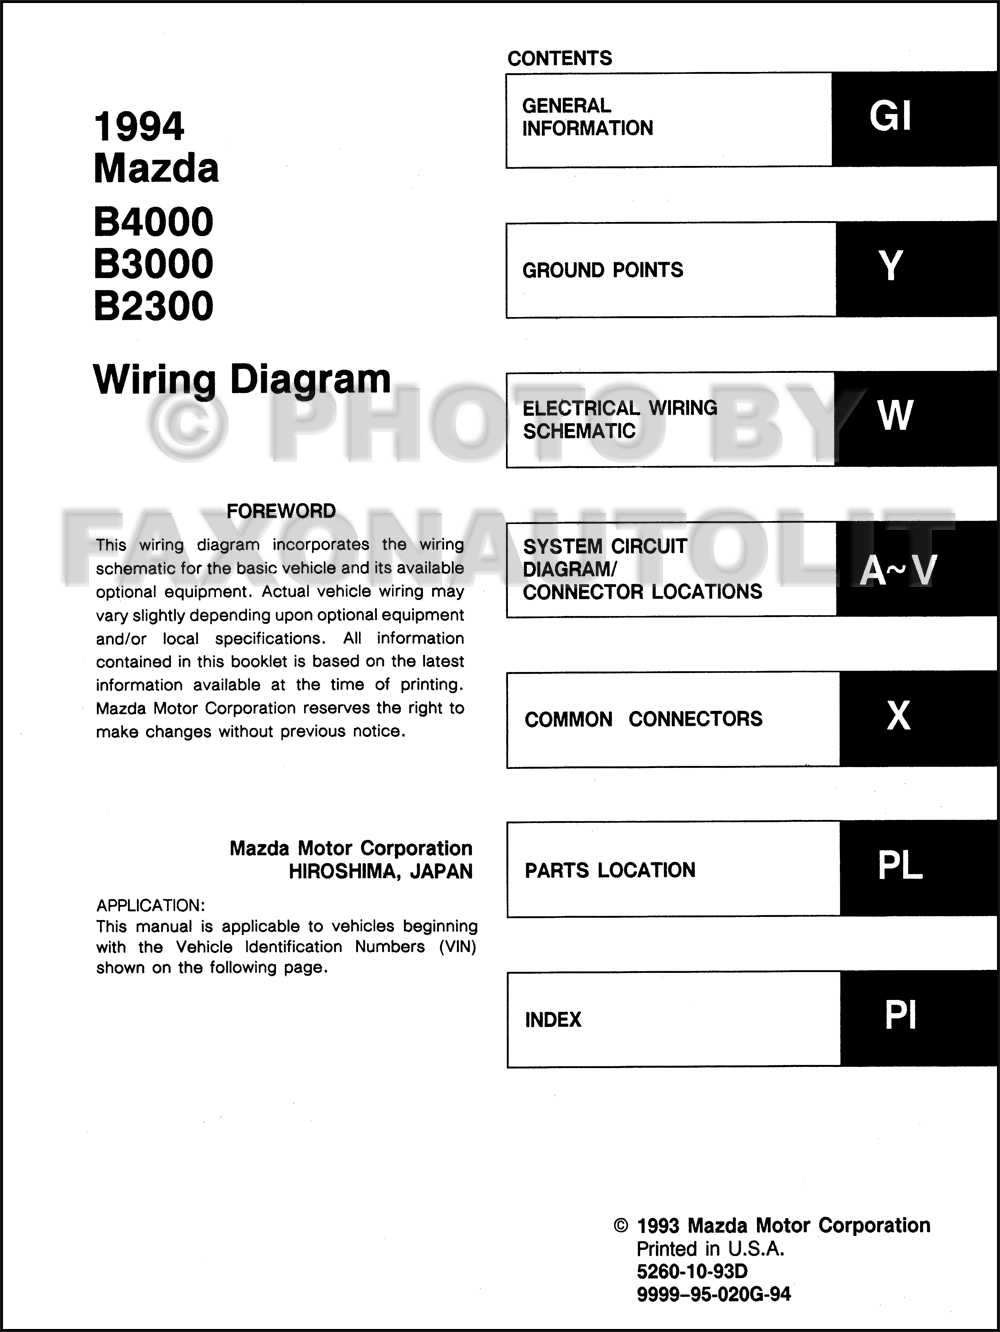 1995 Mazda Miata Wiring Diagram Library 1999 Protege Radio Harness B2300 Schematic Diagrams U2022 1997